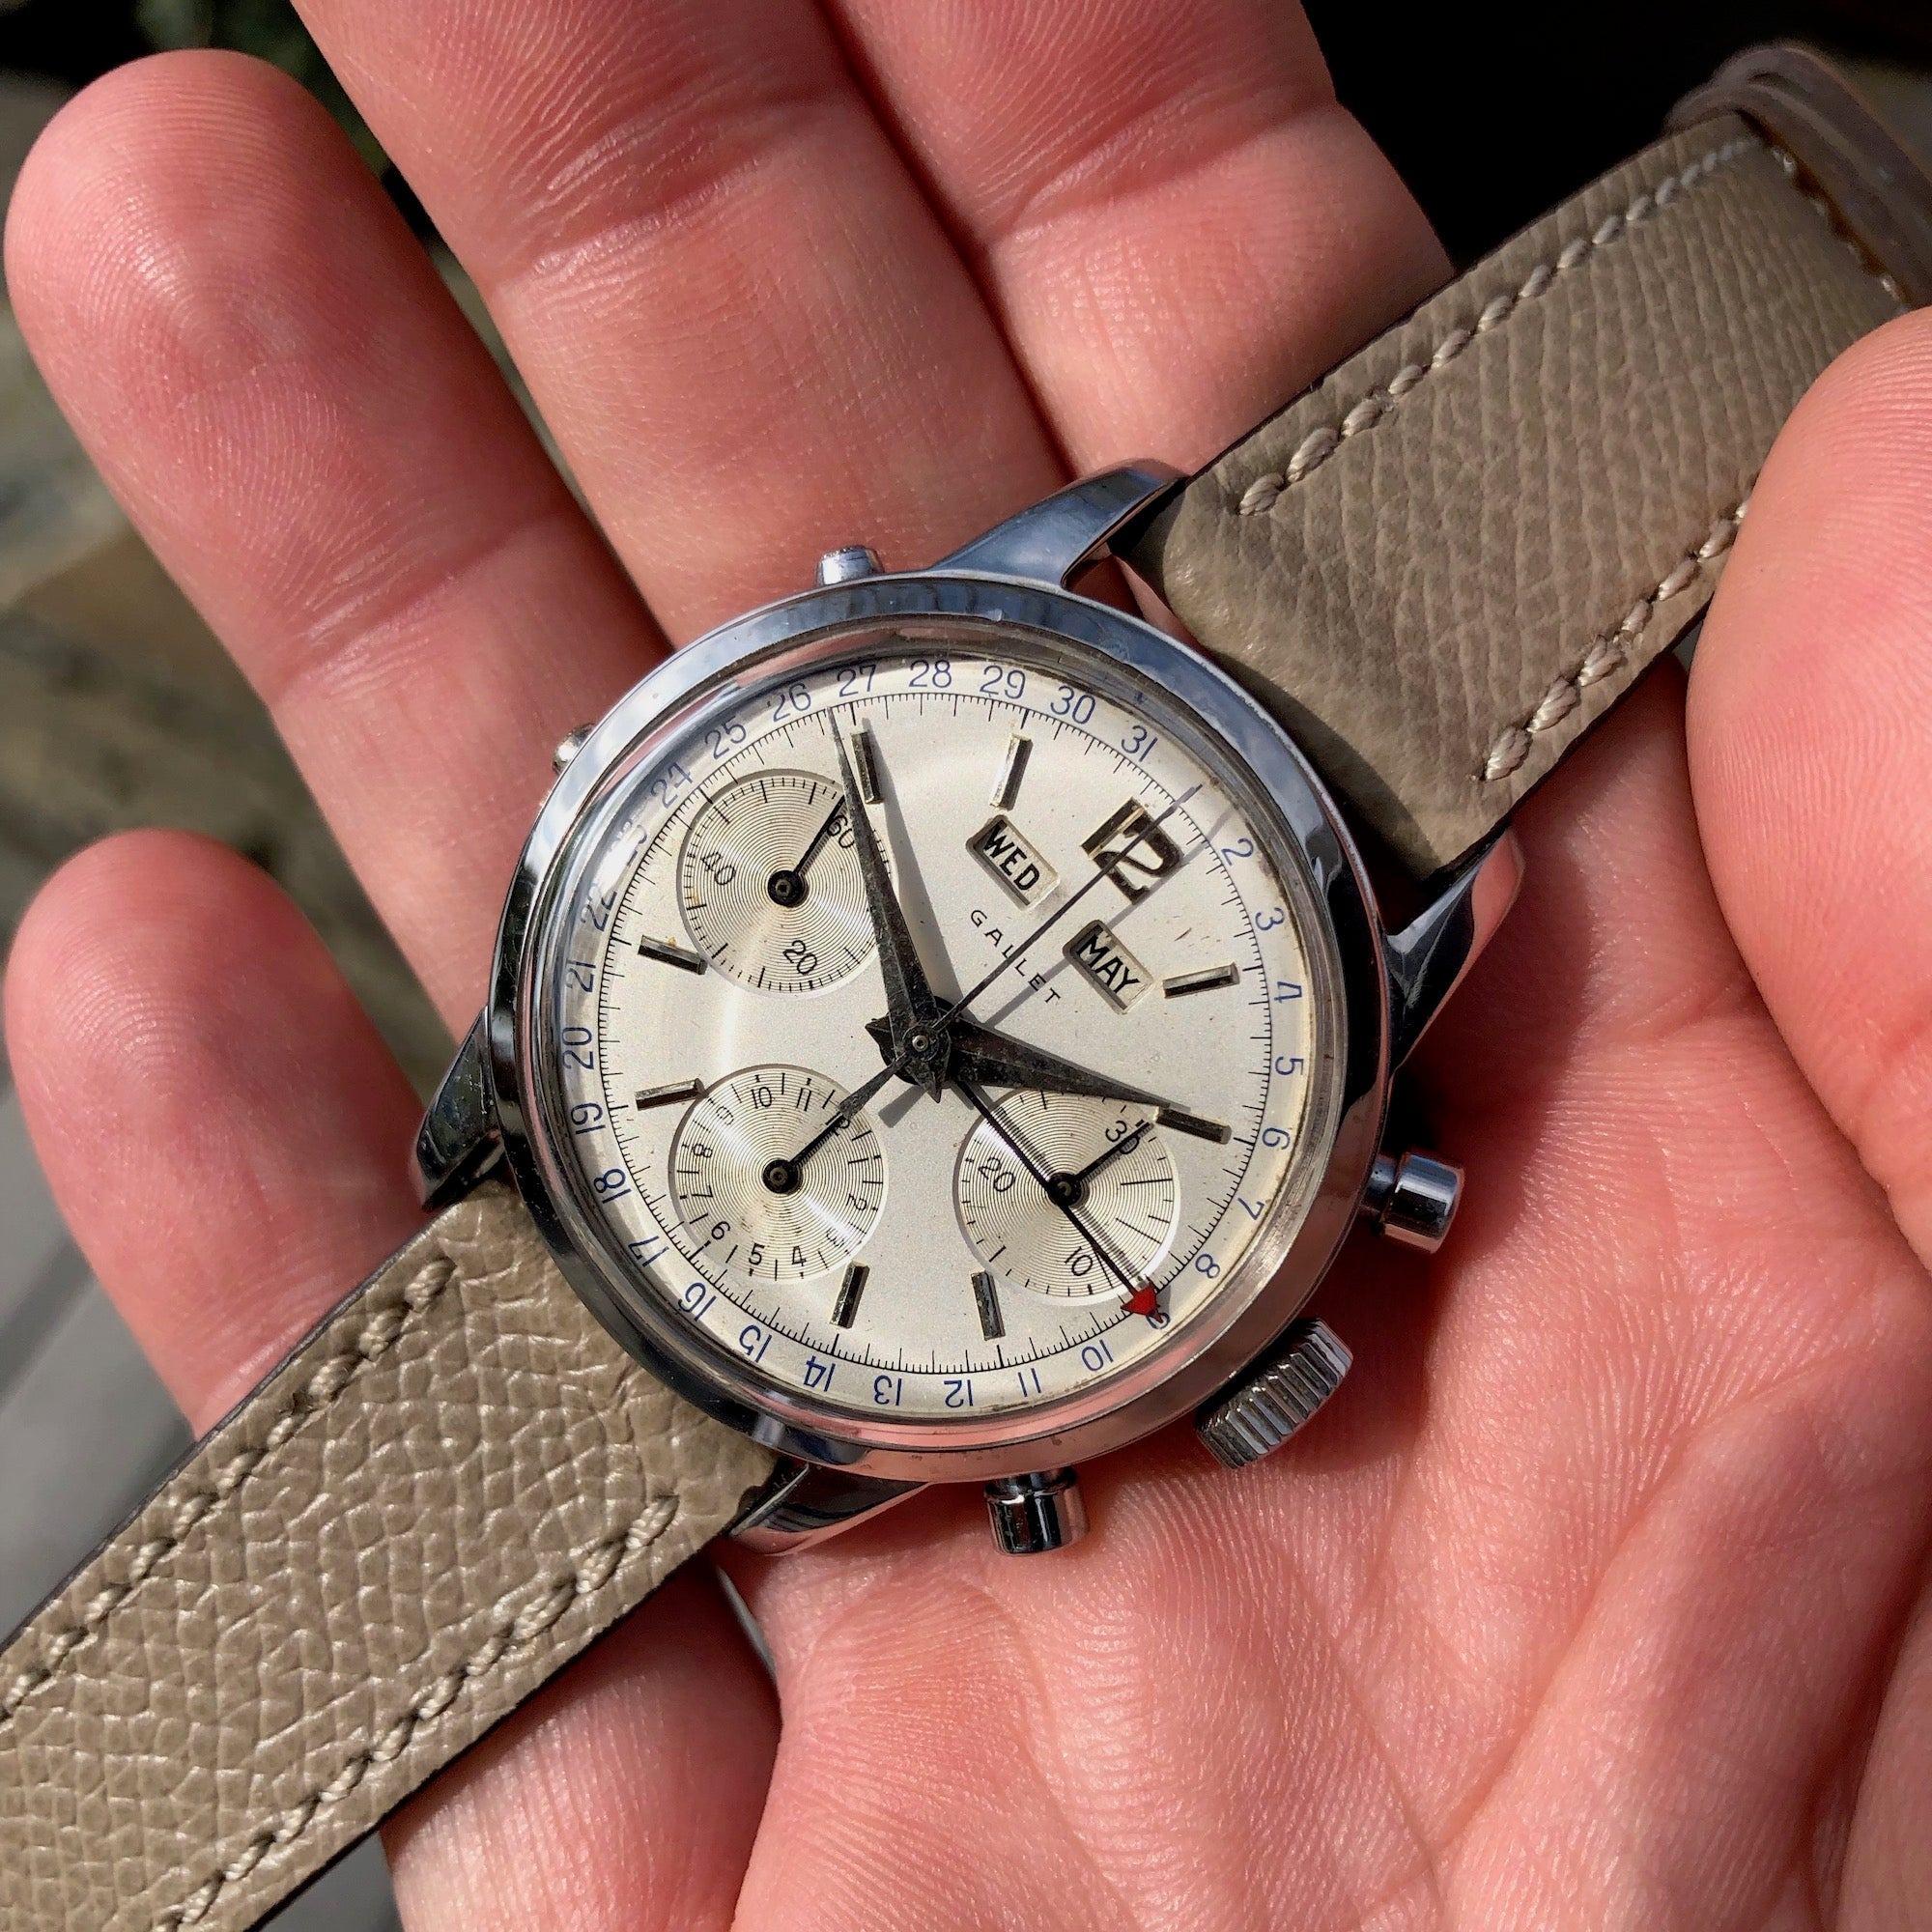 Vintage Gallet Multichron Steel Triple Date Chronograph 998 Valjoux 72 Manual Wind Wristwatch - Hashtag Watch Company